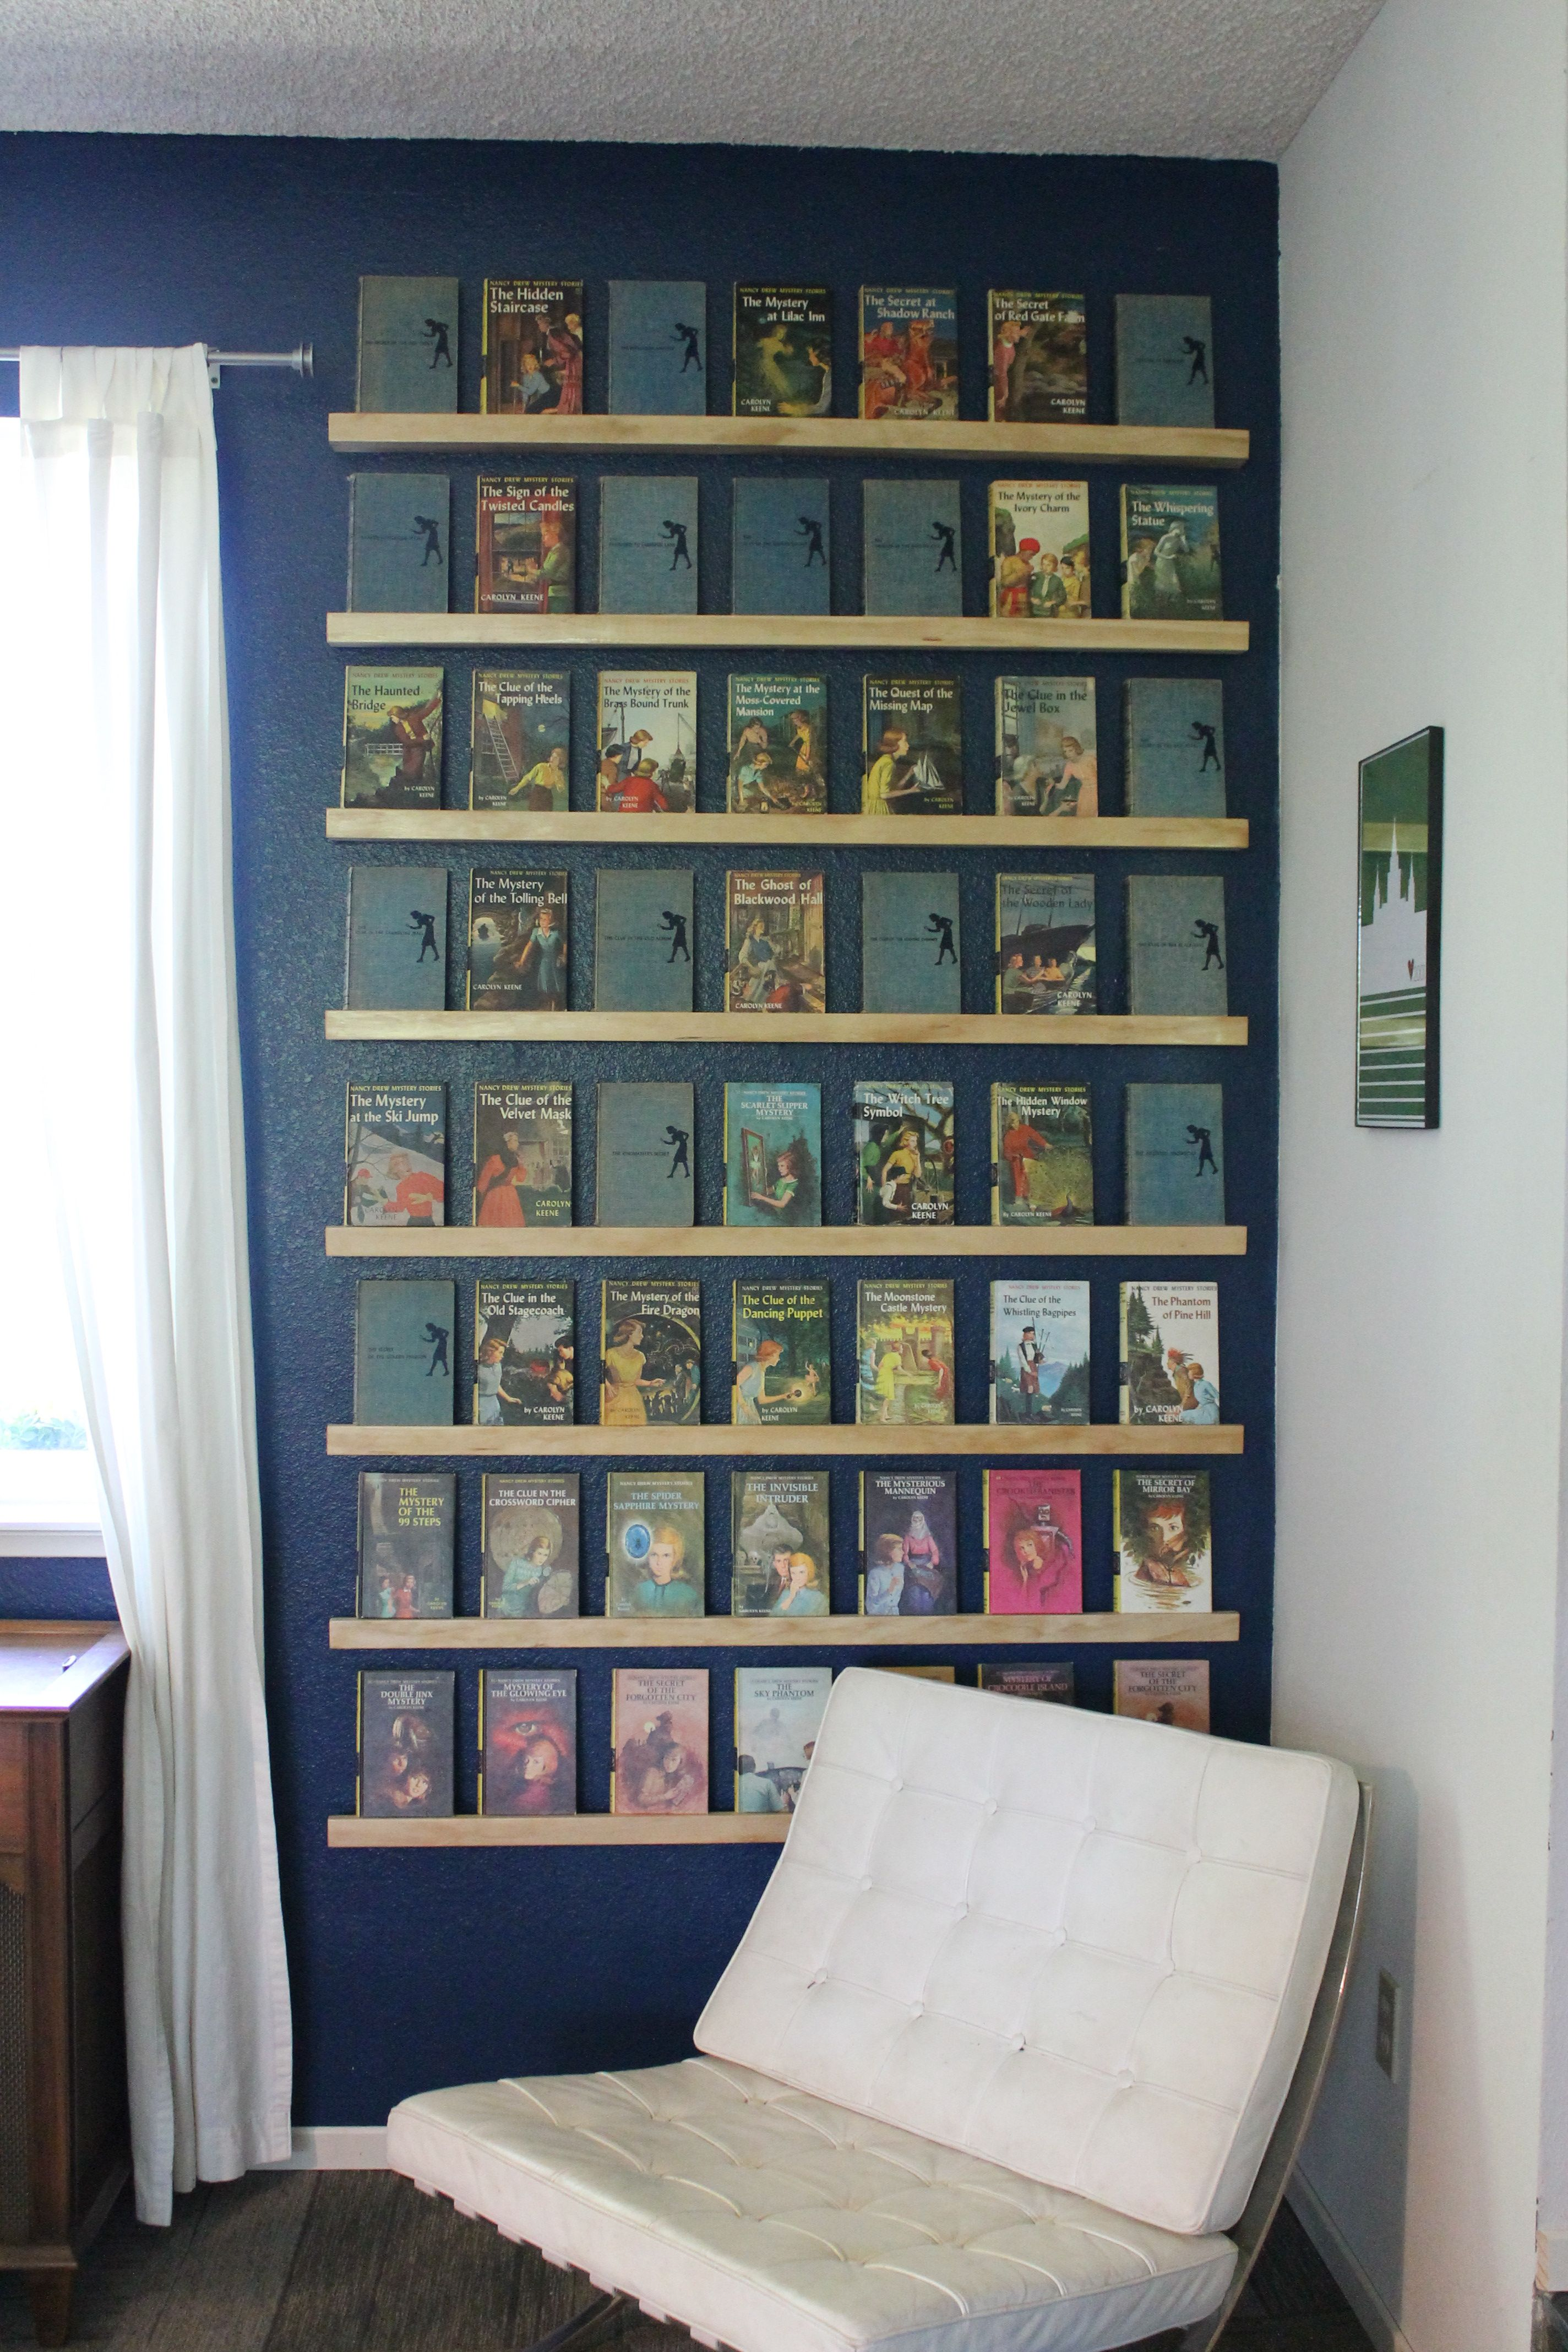 249 photos of the vintage art and wall decor in readers 39 homes reads nancy drew books comic. Black Bedroom Furniture Sets. Home Design Ideas